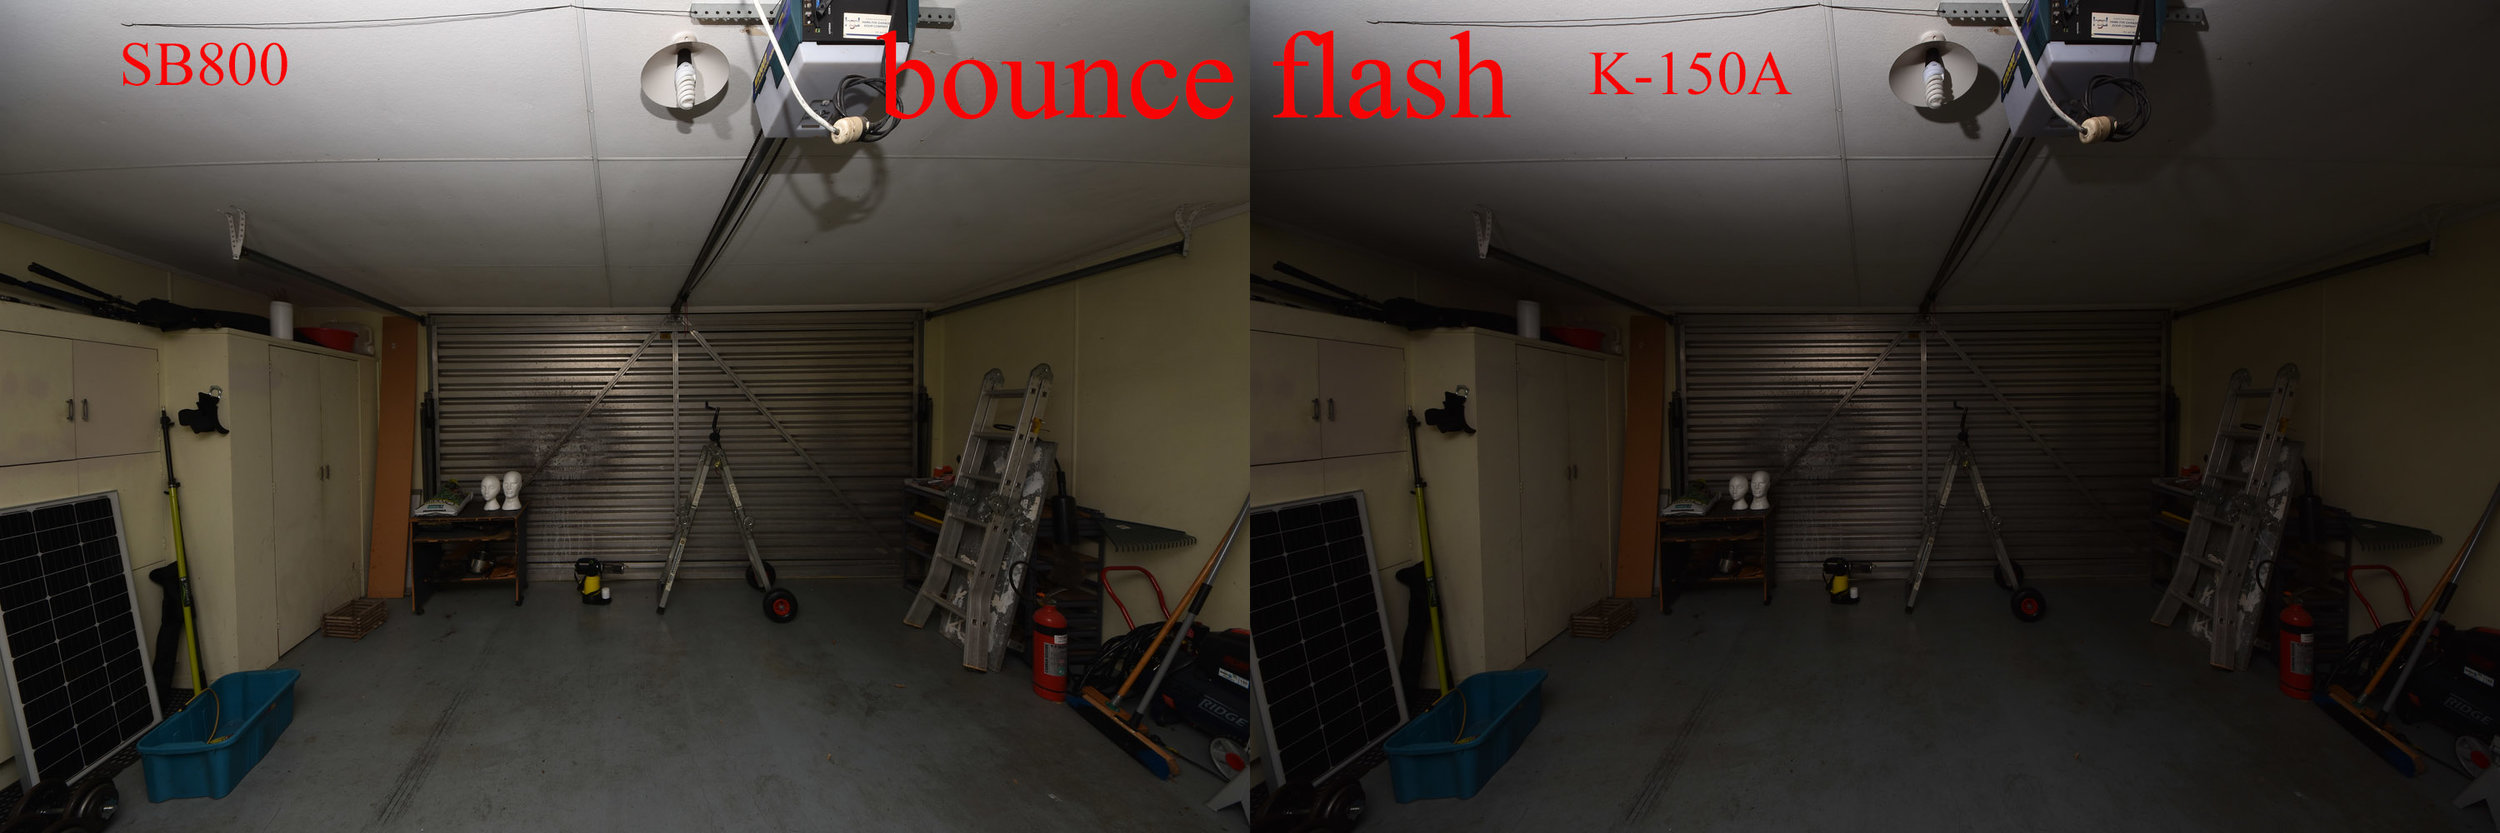 Bounce flash.jpg